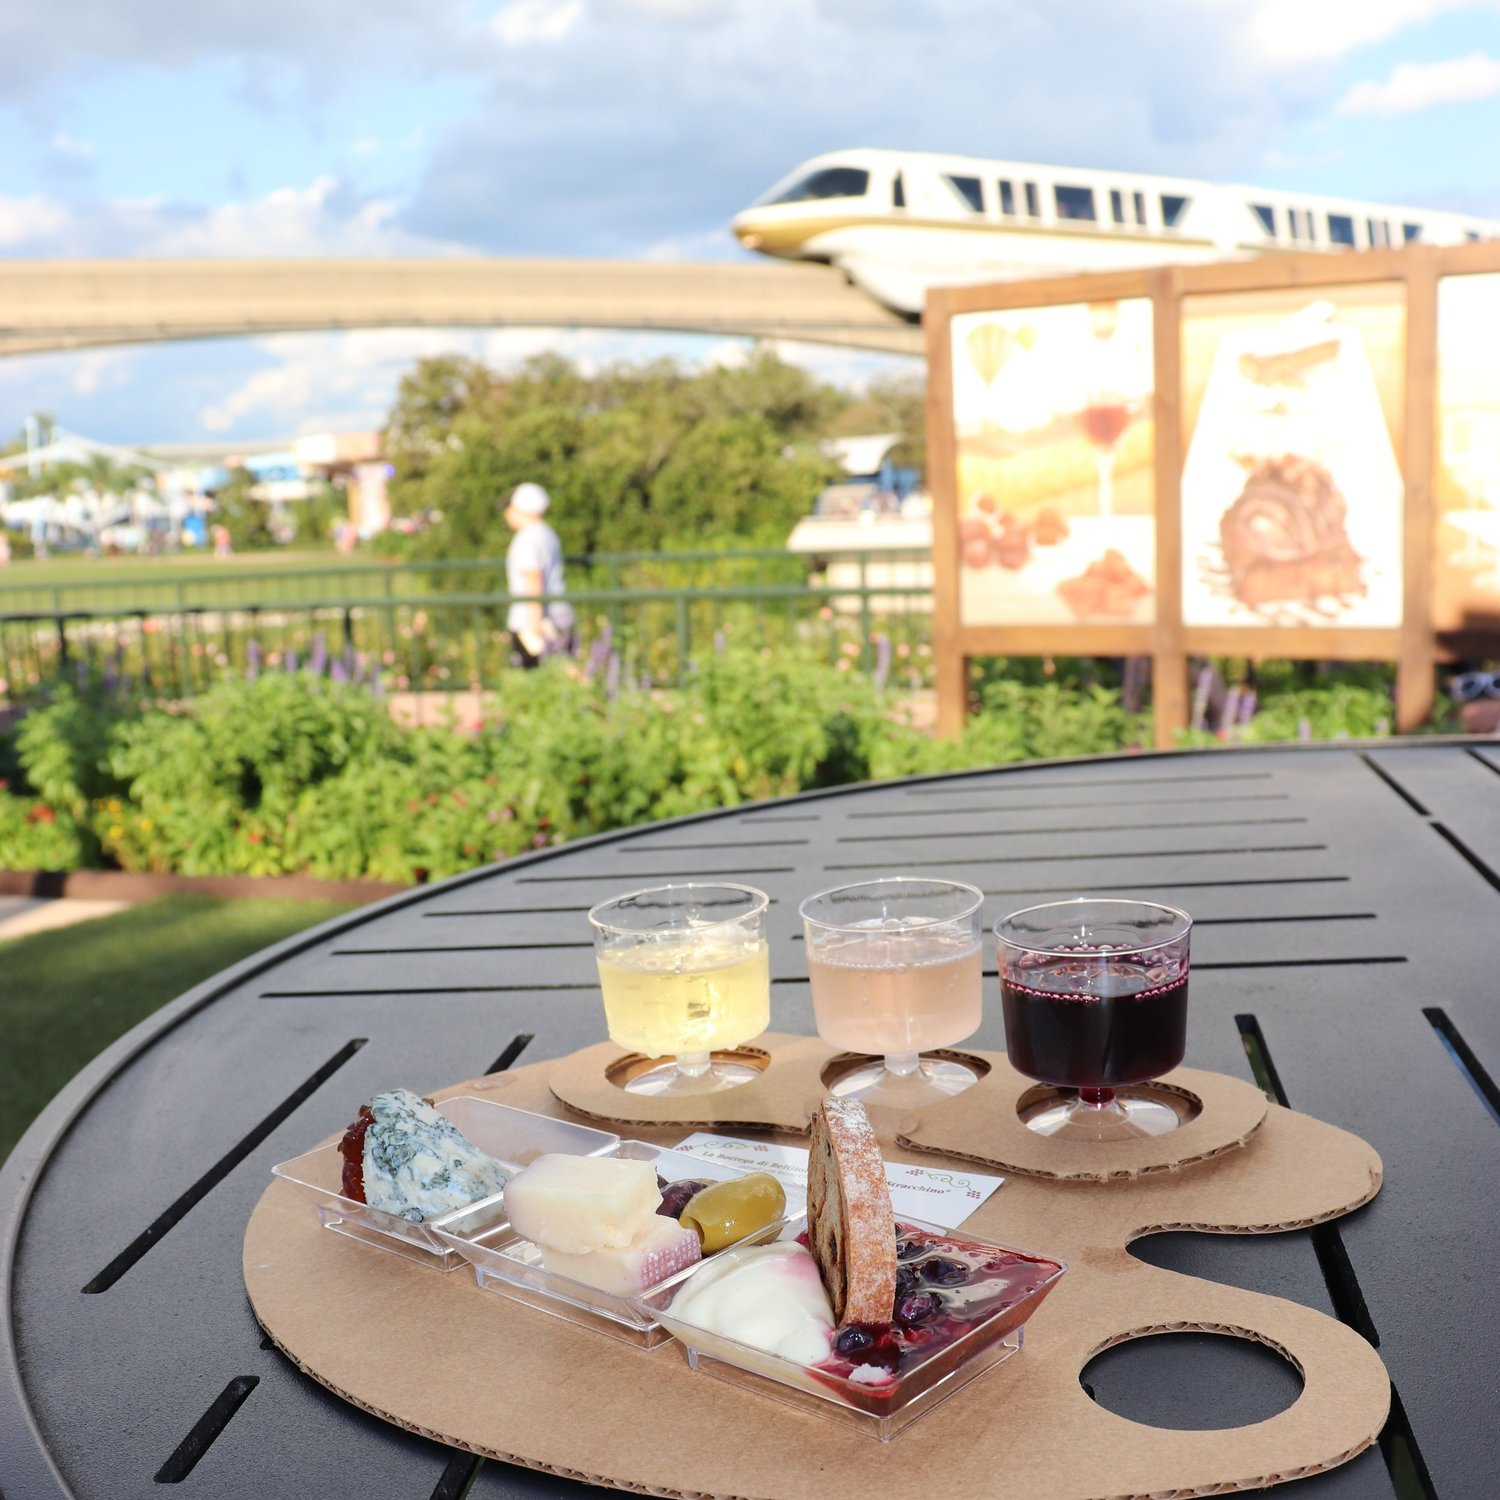 @thedisneydinks's cover photo for '5 Things We Learned at Epcot's International Food & Wine Festival as First Time Visitors'